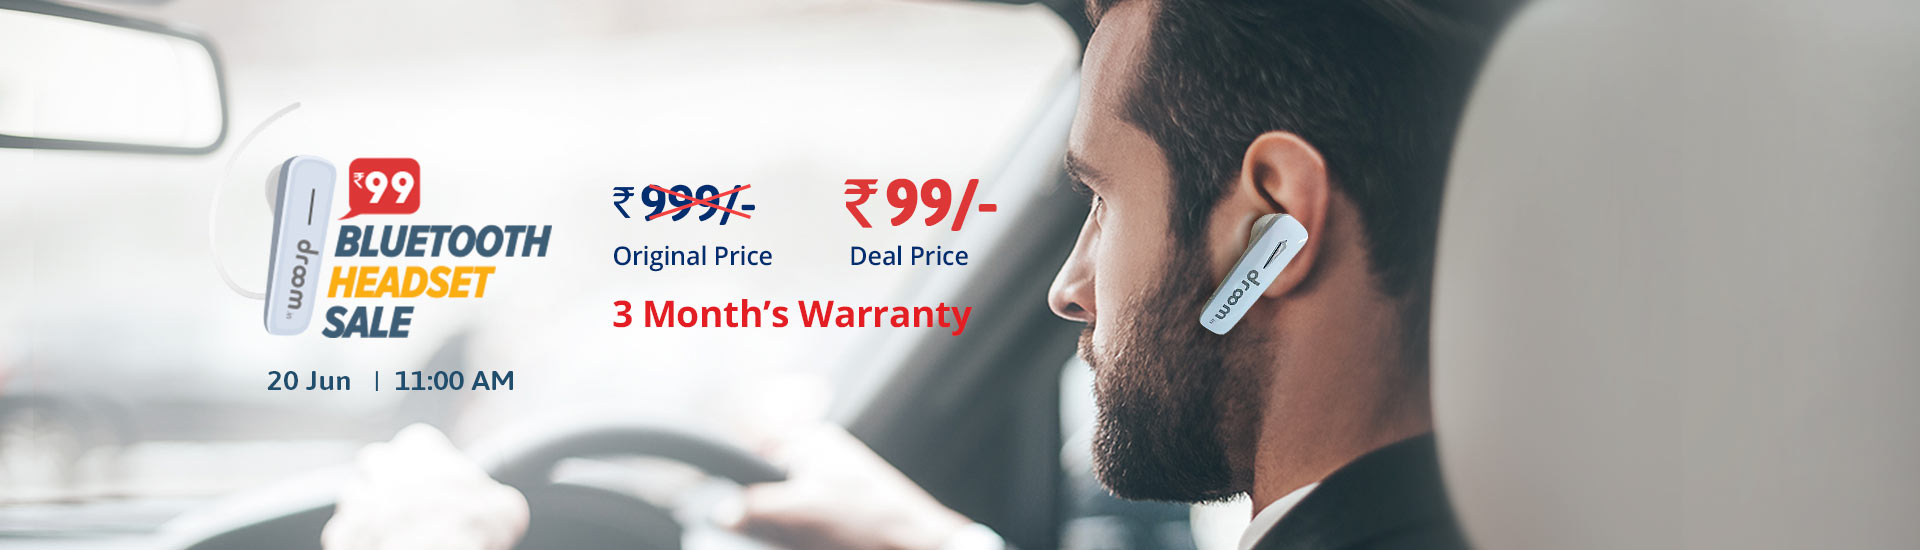 Droom Bluetooth headset sale on JUNE 20 @ 11AM